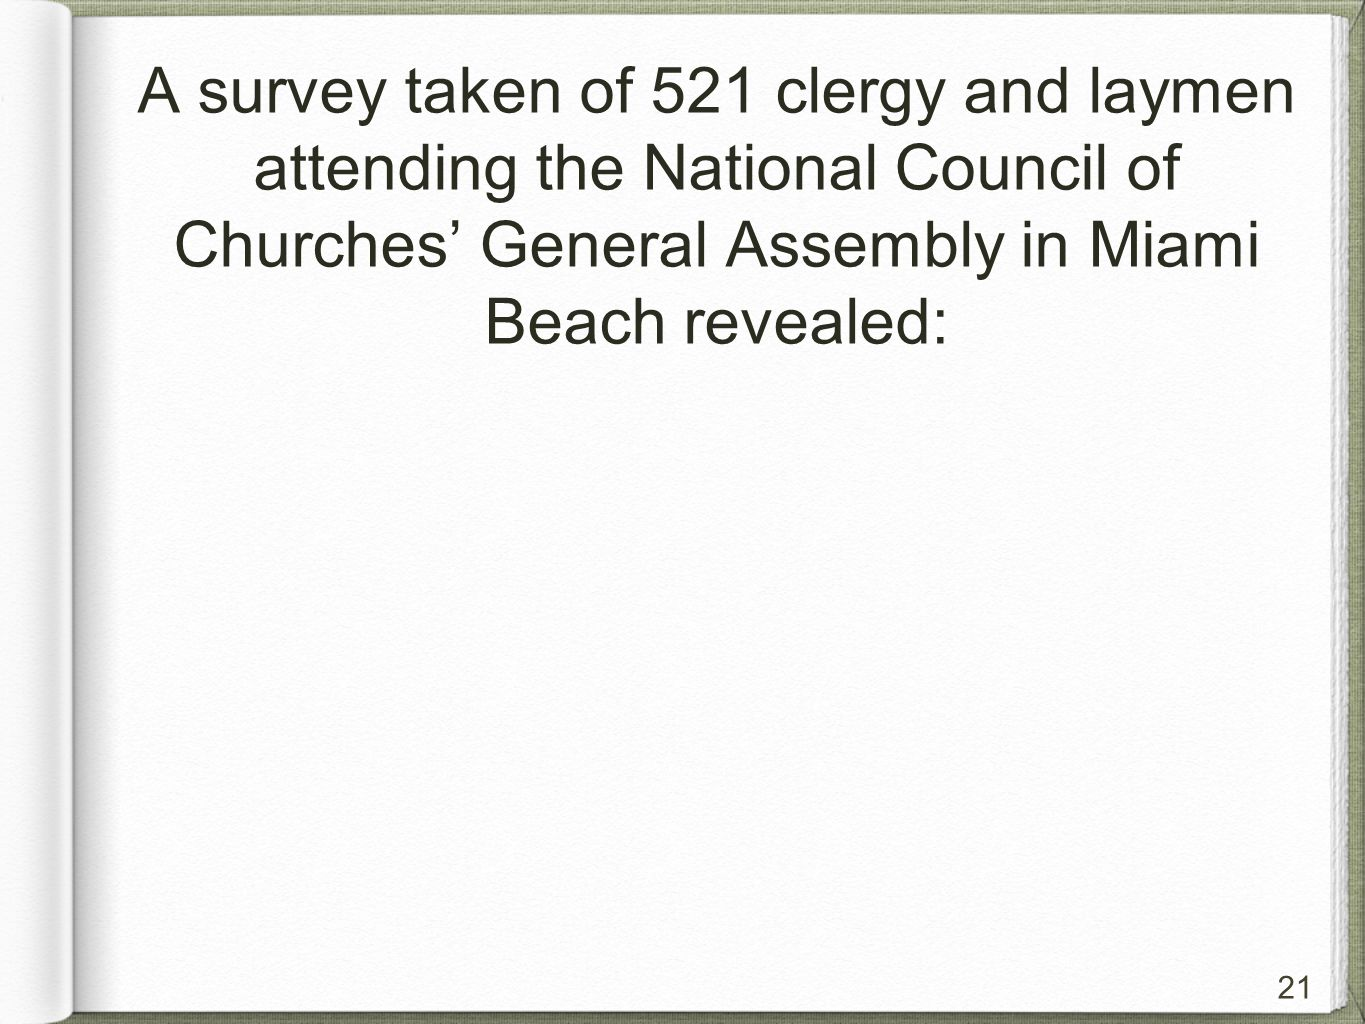 21 A survey taken of 521 clergy and laymen attending the National Council of Churches' General Assembly in Miami Beach revealed: